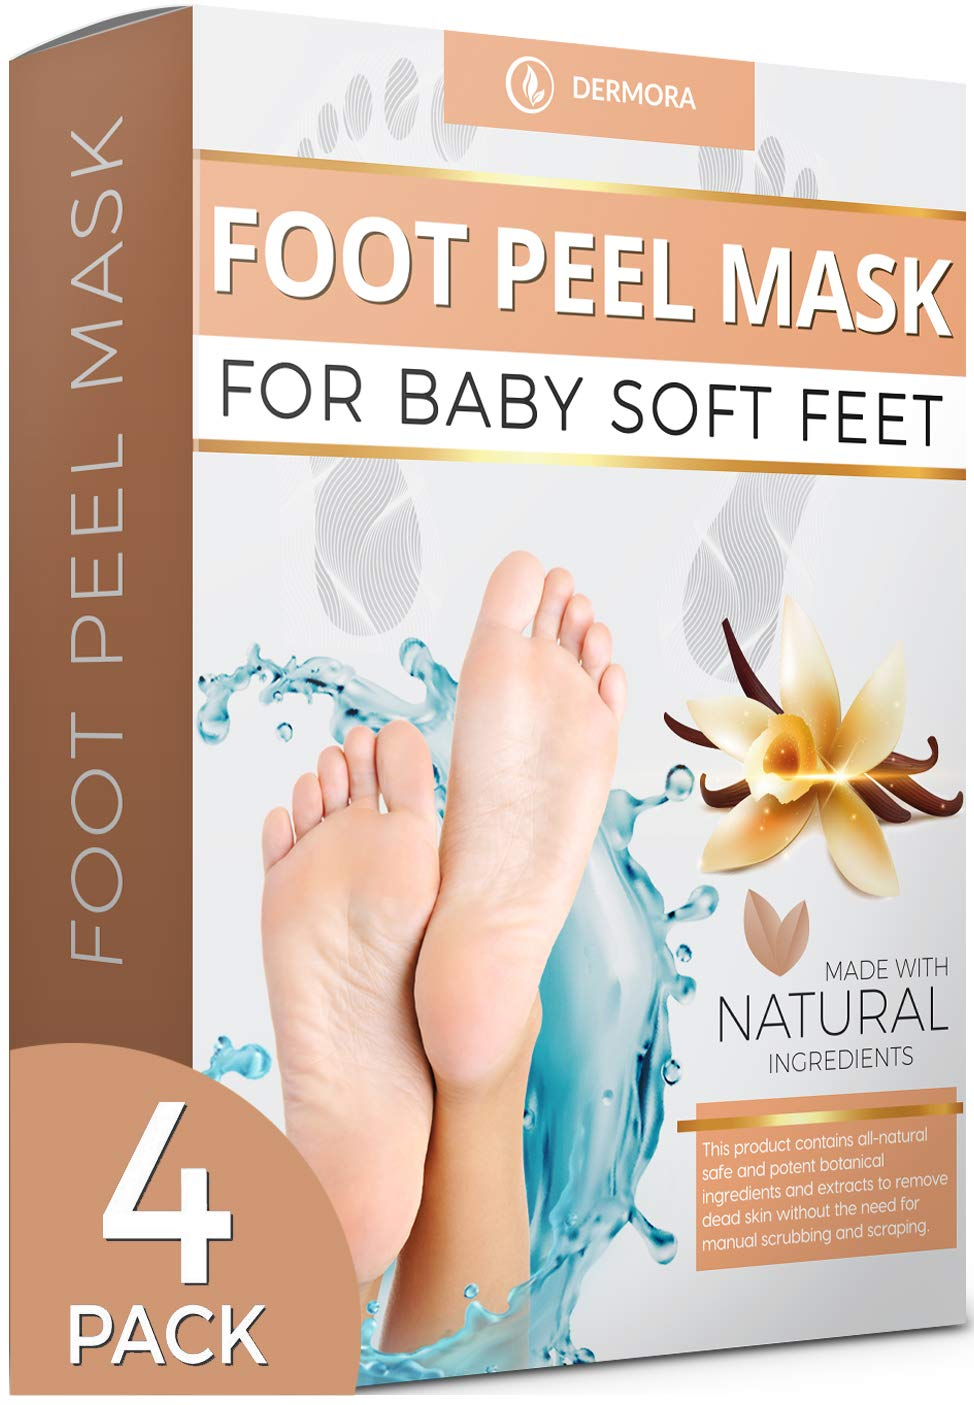 Vanilla Foot Peel Mask - 4 Pack - For Cracked Heels, Dead Skin & Calluses - Make Your Feet Baby Soft & Get Smooth Silky Skin - Removes Rough Heels, Dry Skin - Natural Treatment